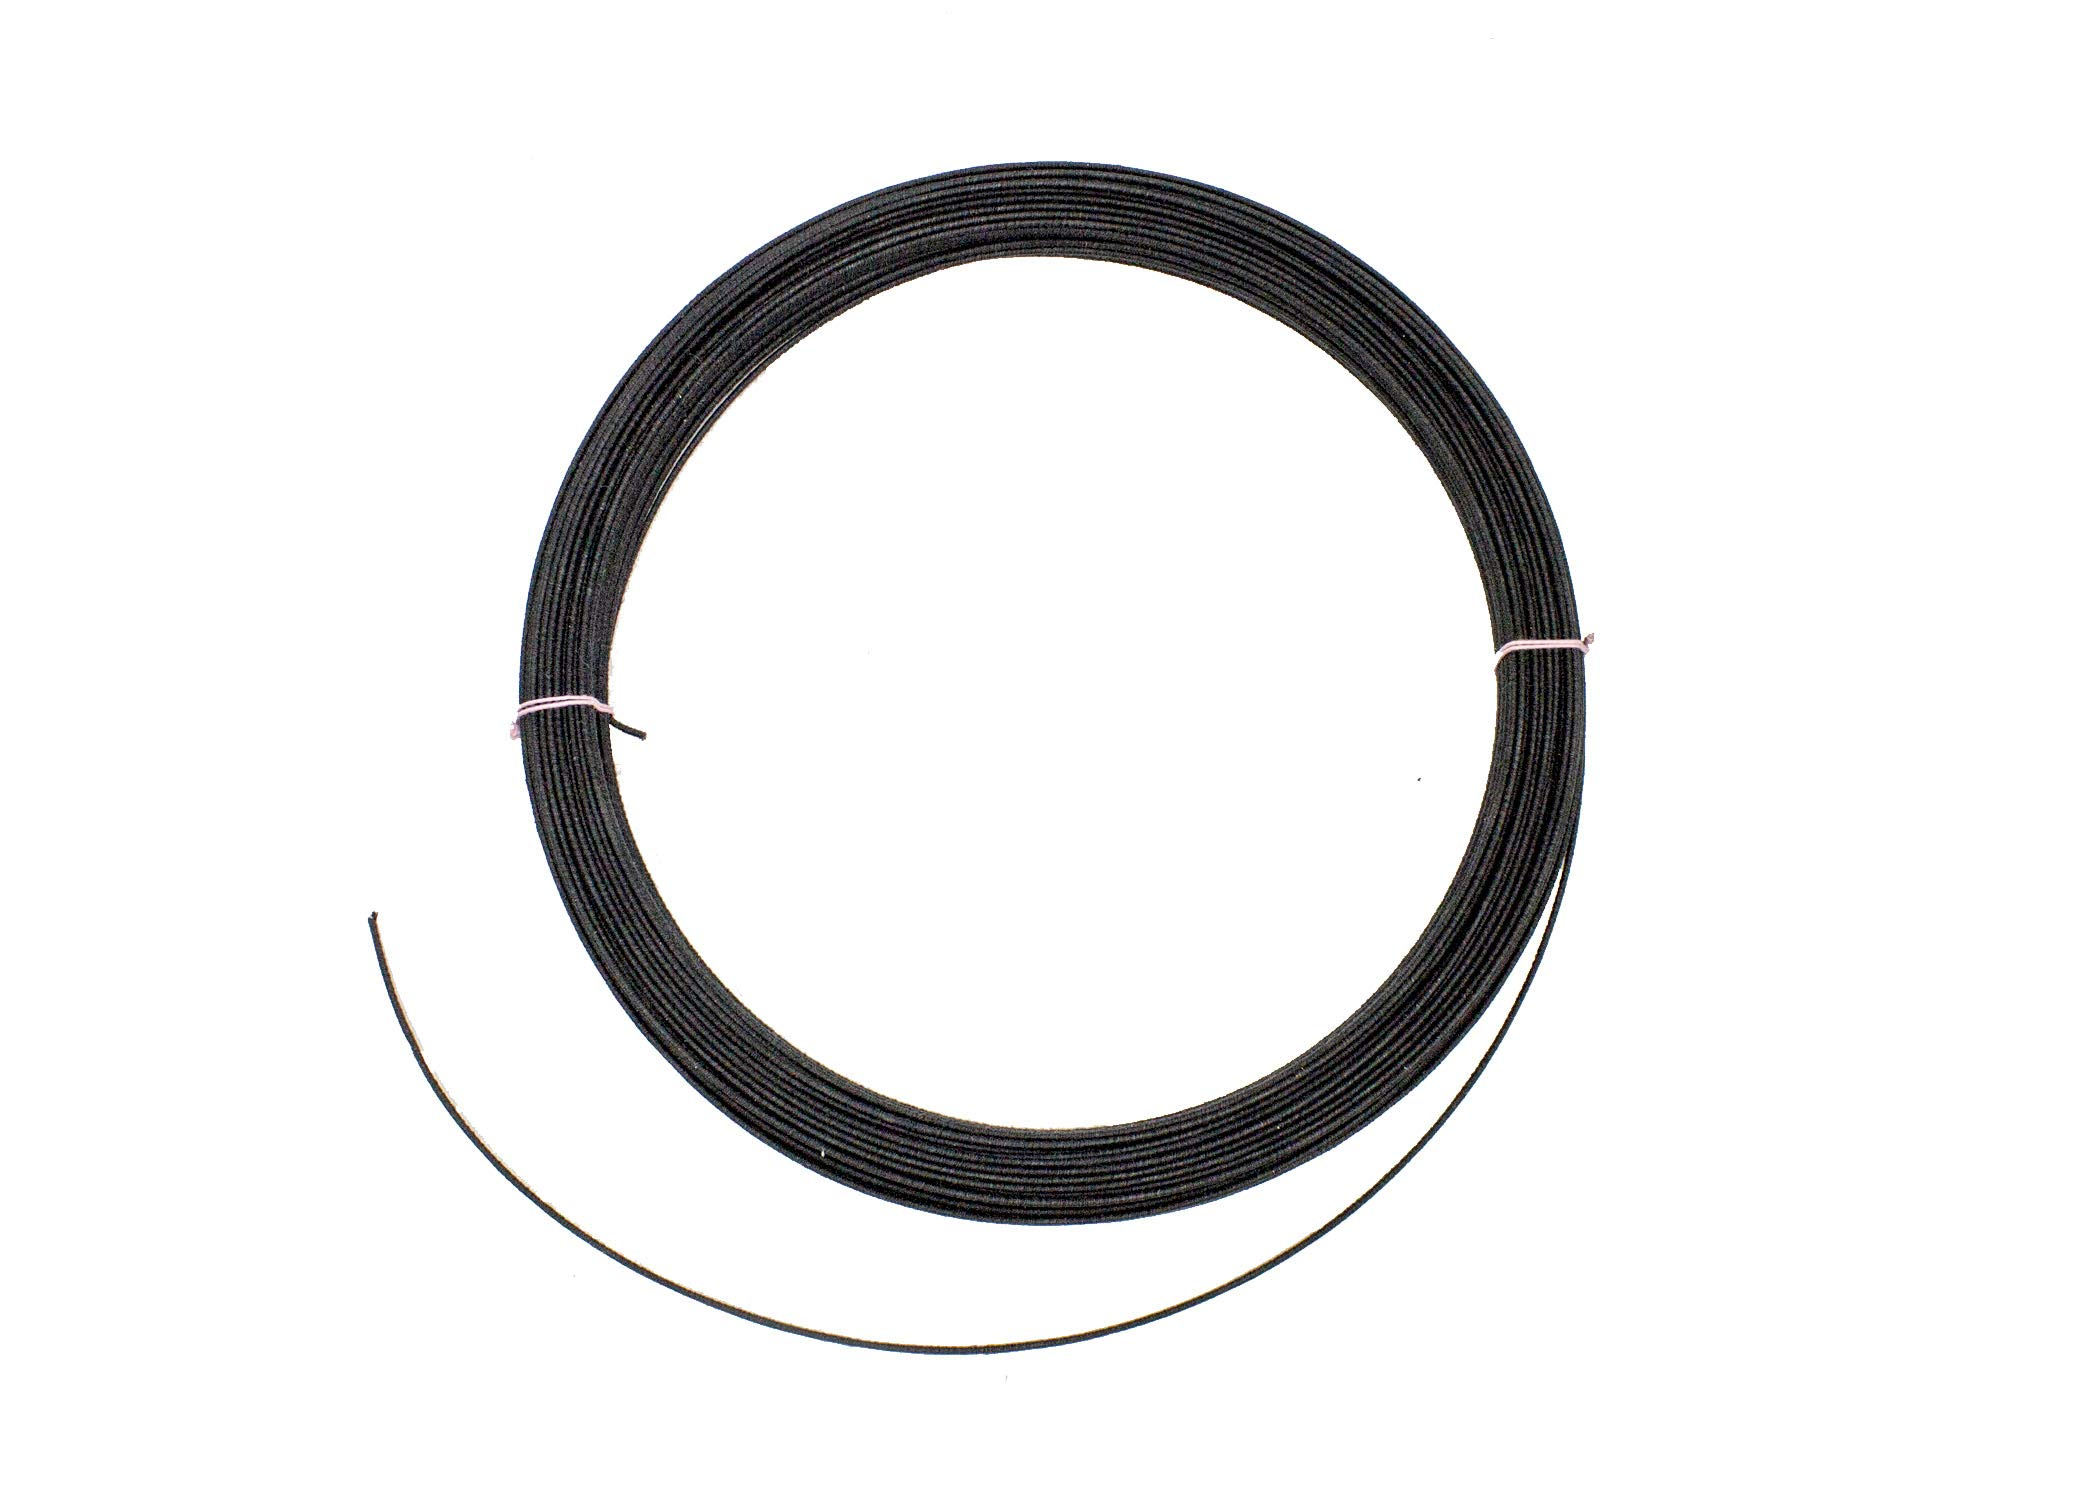 19g Cotton Covered Millinery Wire Standard Firm Black- 60 Yards by Humboldt Haberdashery (Image #1)